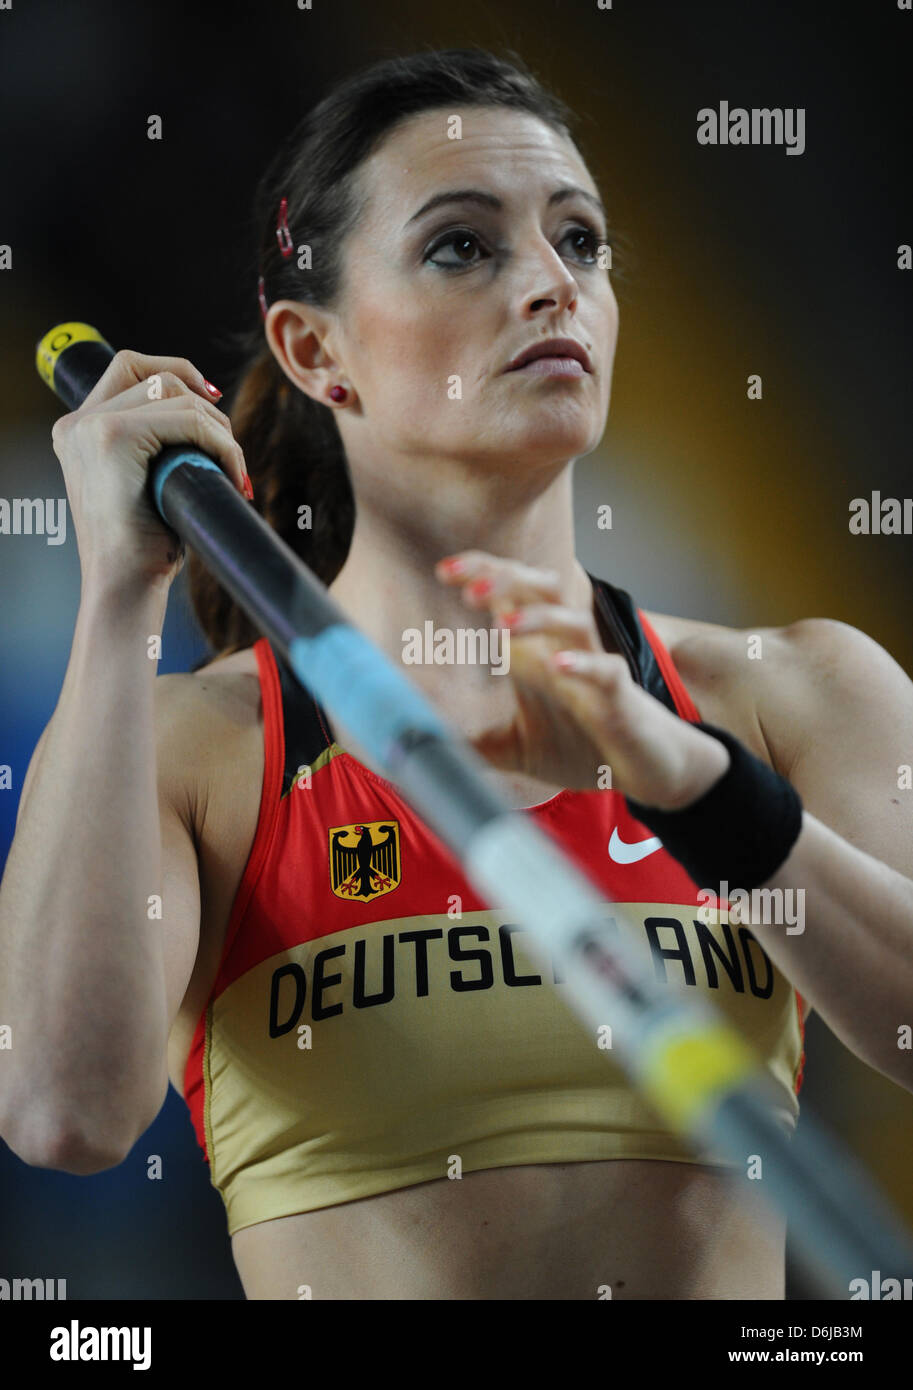 Germany's Kristina Gadschiew prepares for her attempt in the Women's pole vault final at the IAAF World - Stock Image